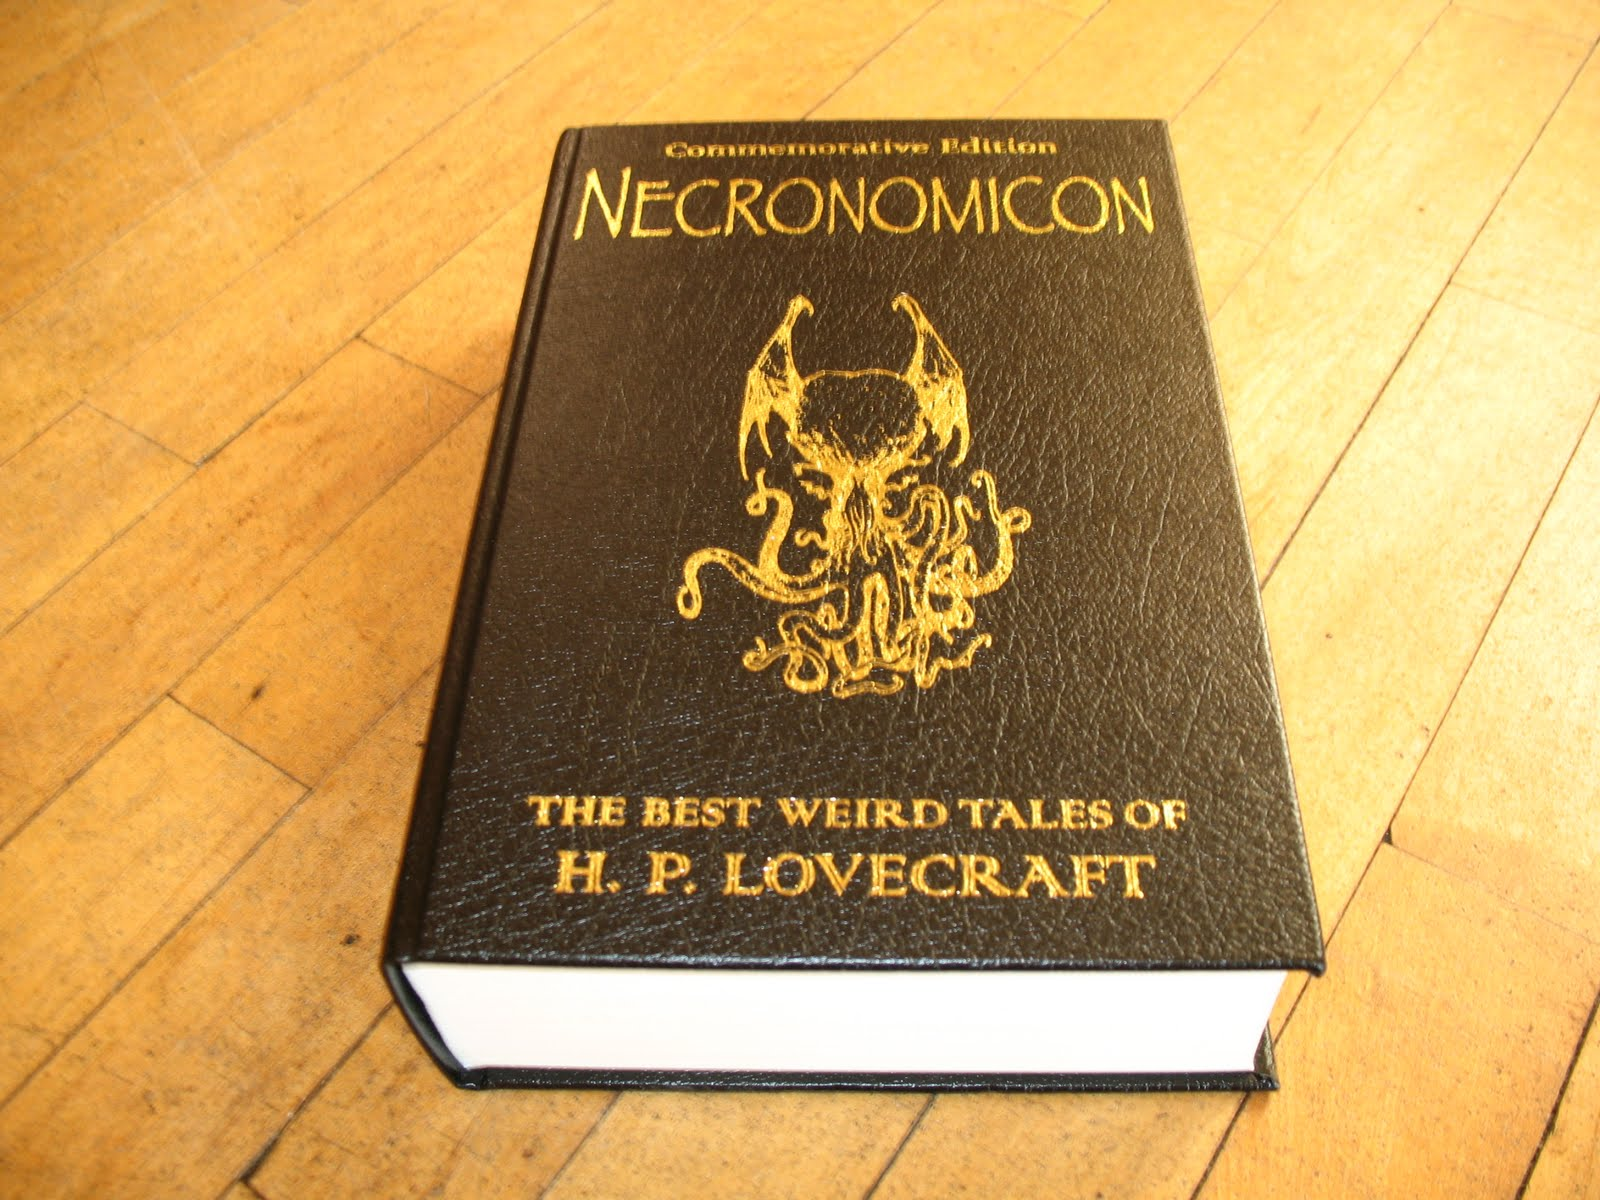 After Libro Comprar H.p. Lovecraft : Books